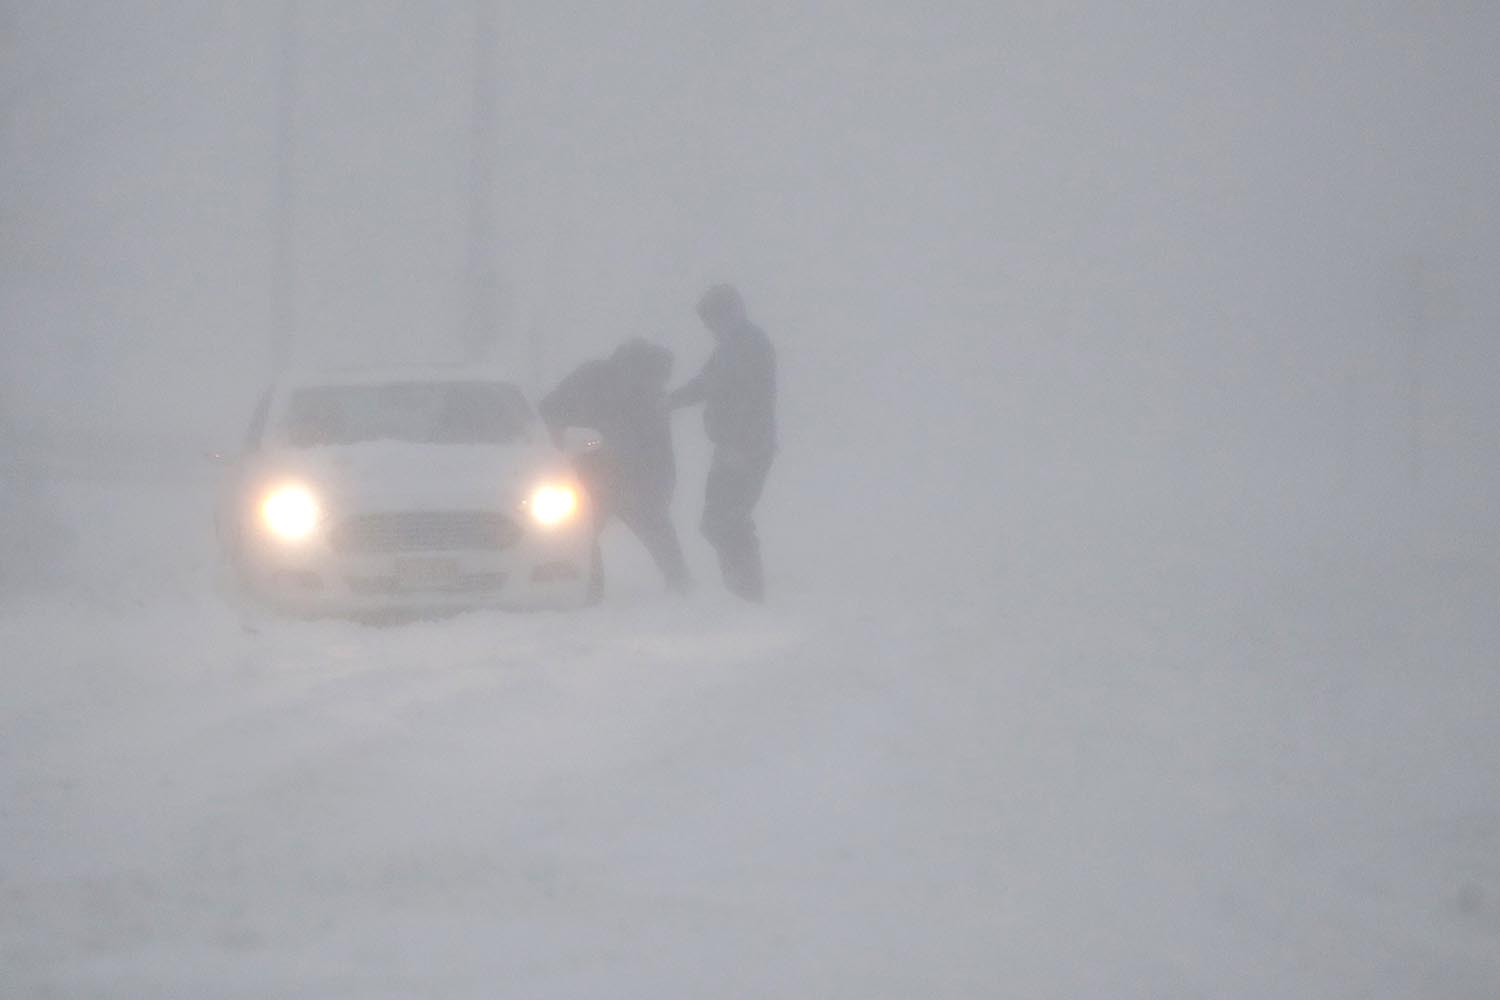 <div class='meta'><div class='origin-logo' data-origin='AP'></div><span class='caption-text' data-credit='AP Photo/Julio Cortez'>People try to clear snow off after being stuck on a snowbank on the Garden State Parkway in whiteout conditions during a snowstorm, Thursday, Jan. 4, 2018, in Tinton Falls, N.J.</span></div>